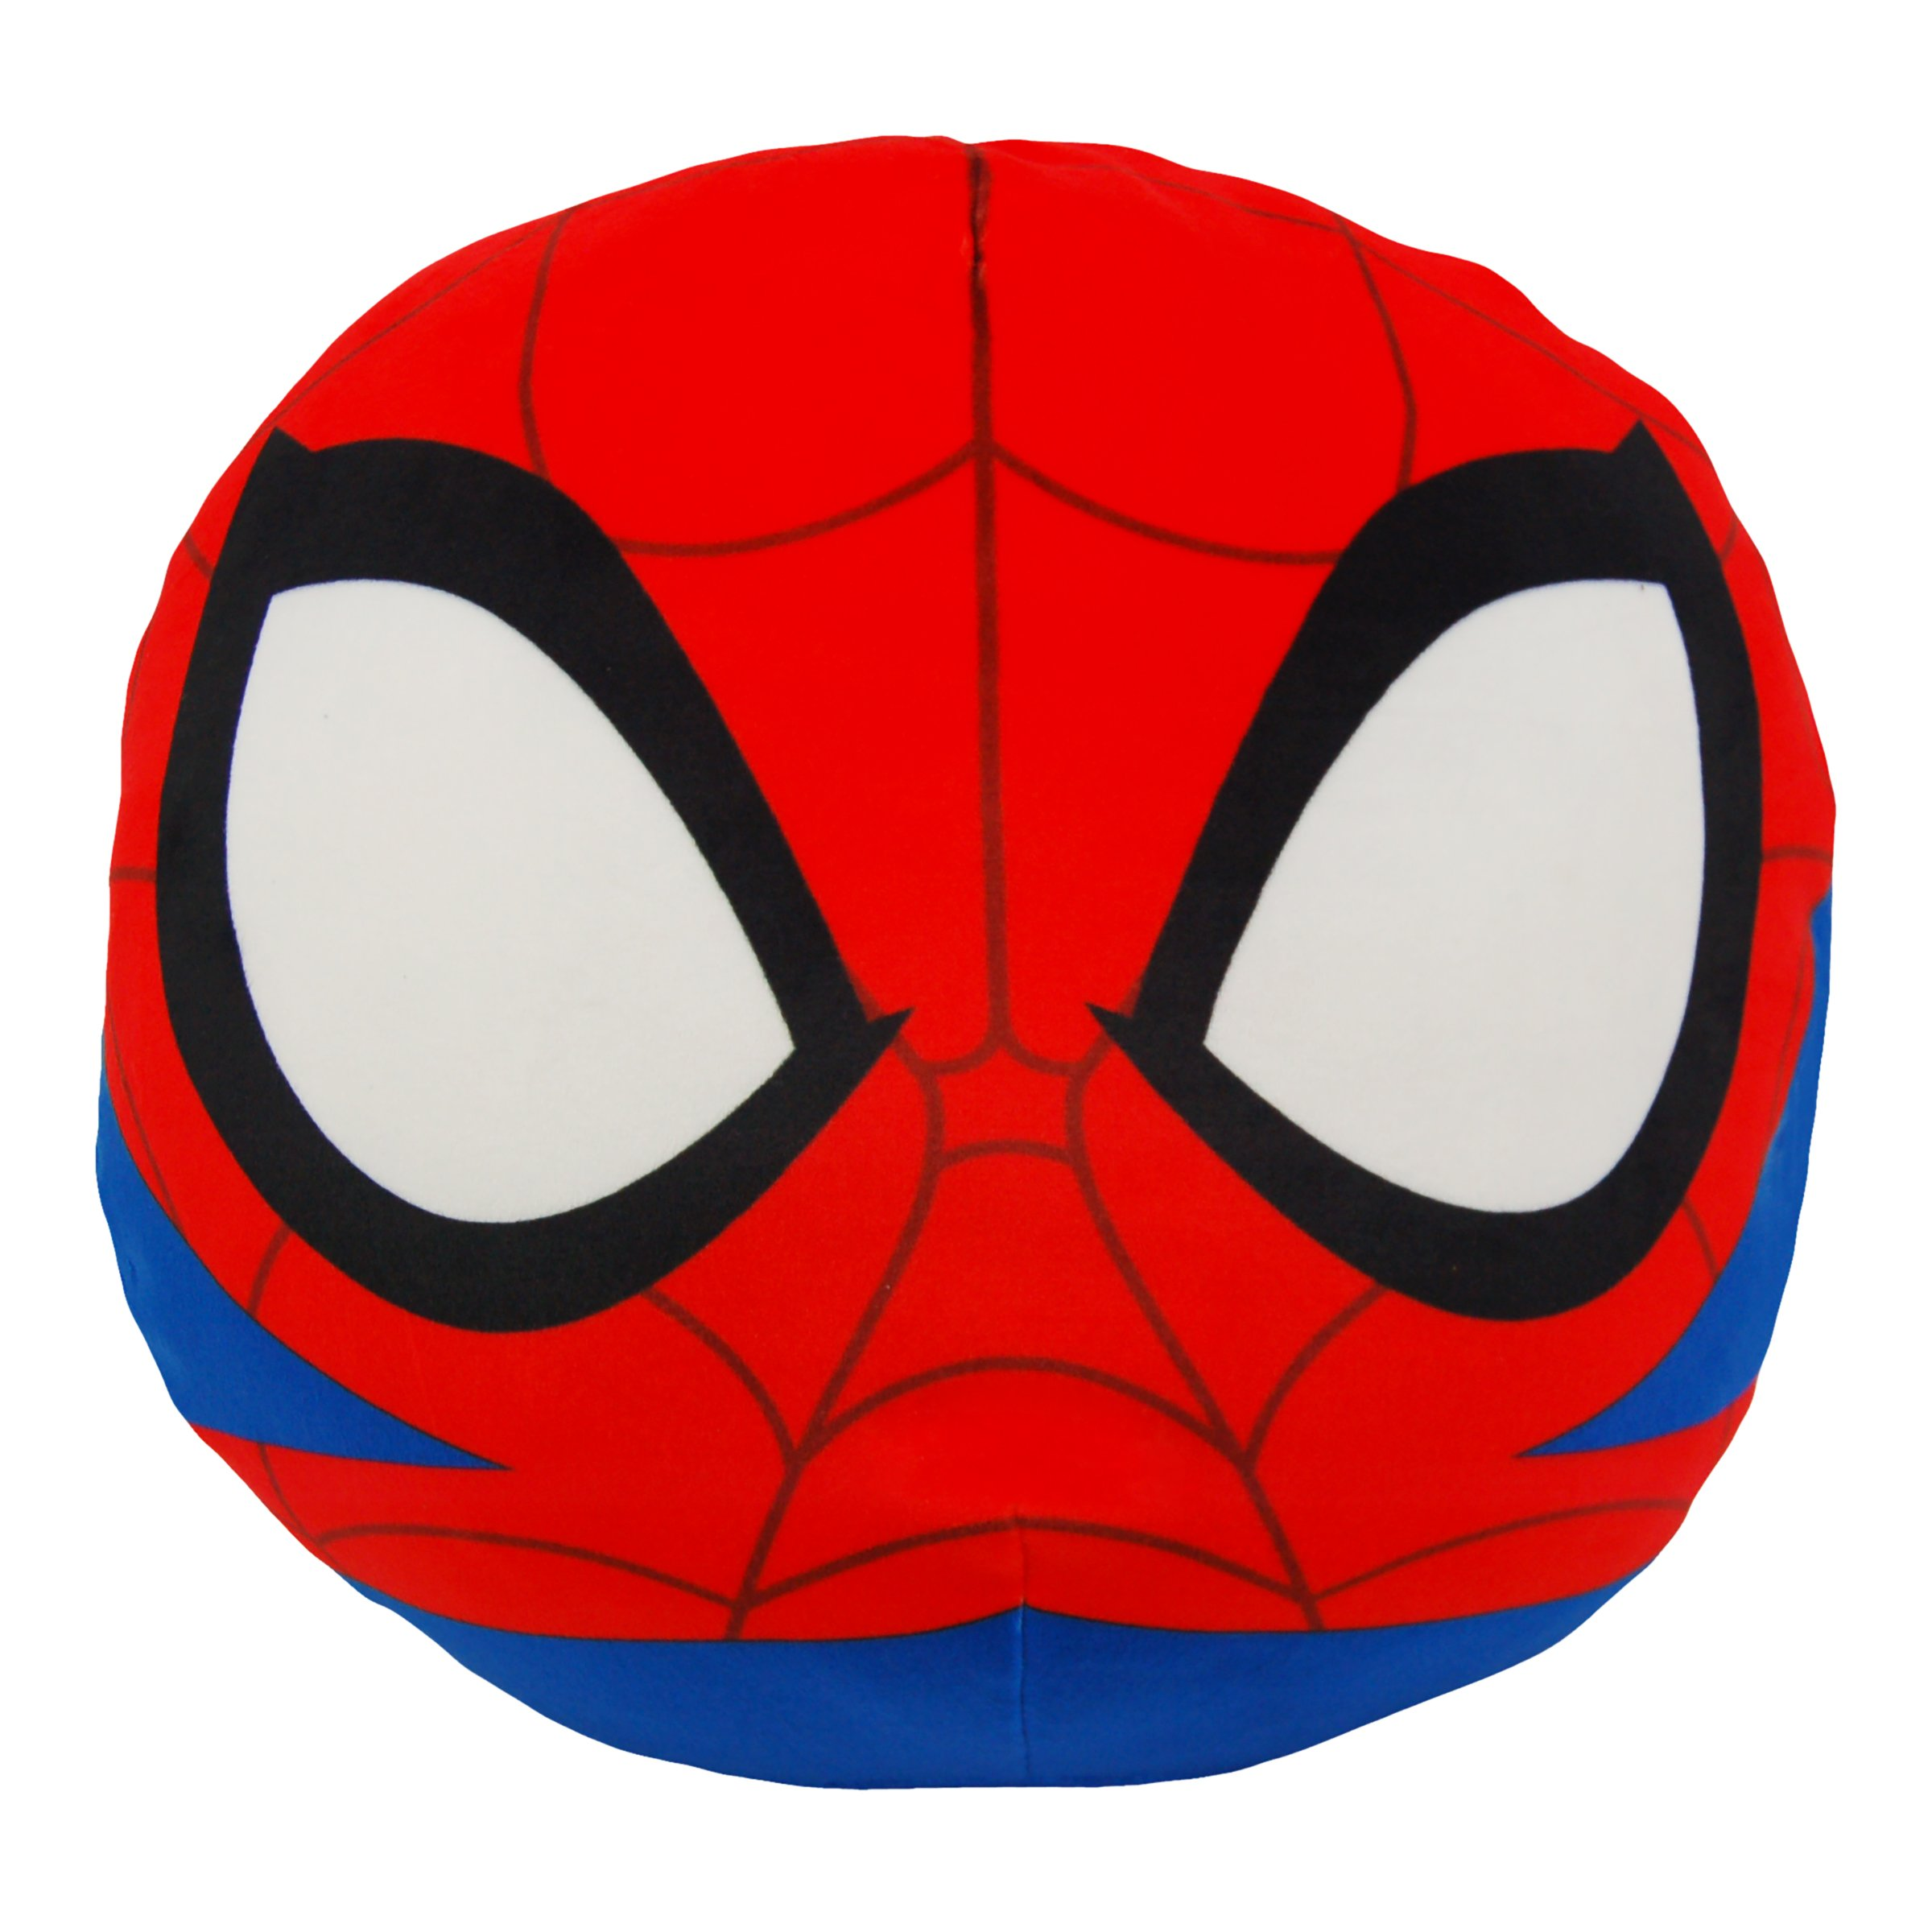 "Marvel Spider-Man, ""Spider-Man"" 3D Ultra Stretch Cloud Pillow, 11"" Round, Multi Color"